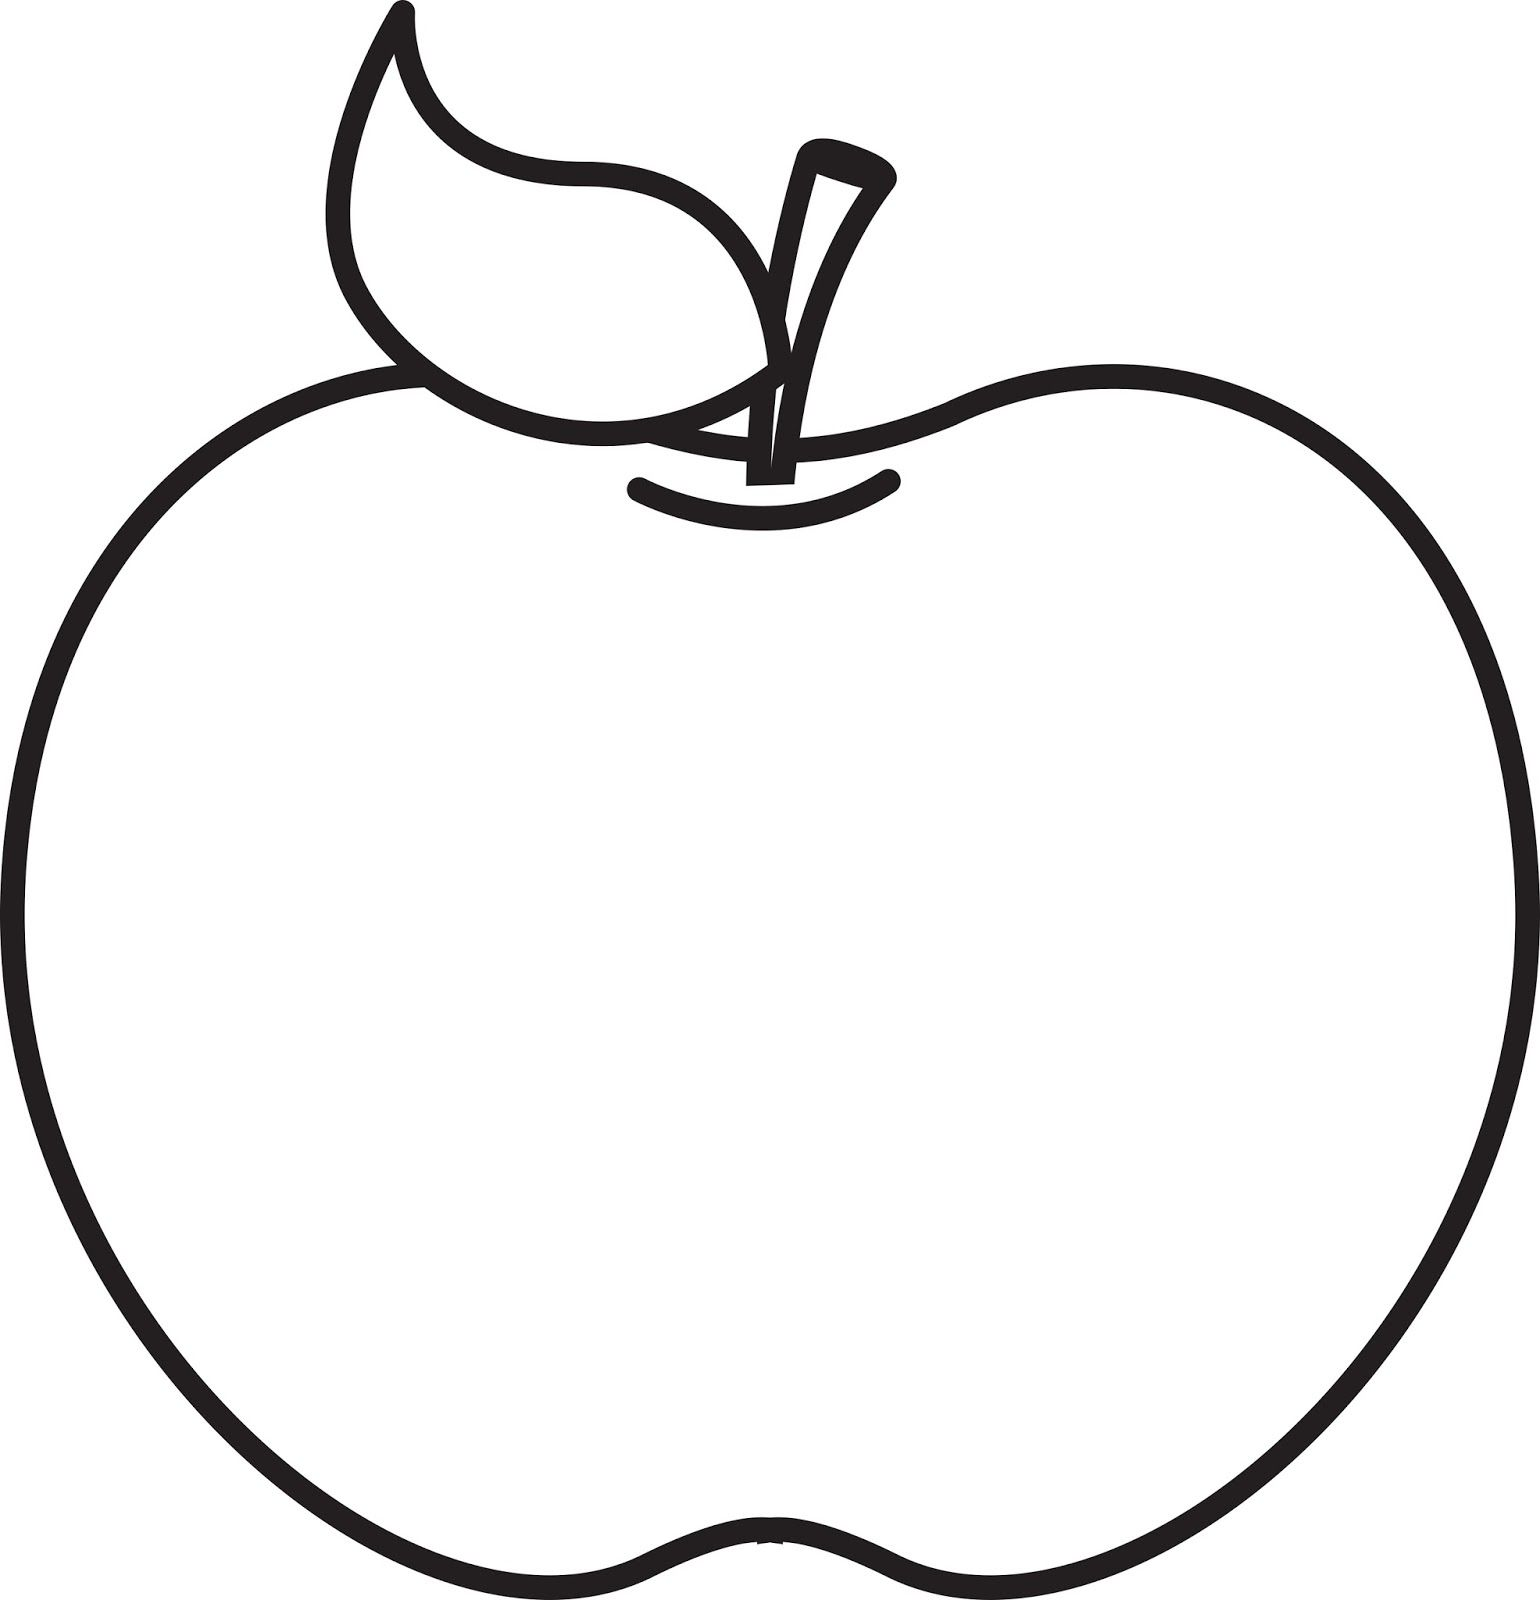 Image Result For Apple Clipart Black And White